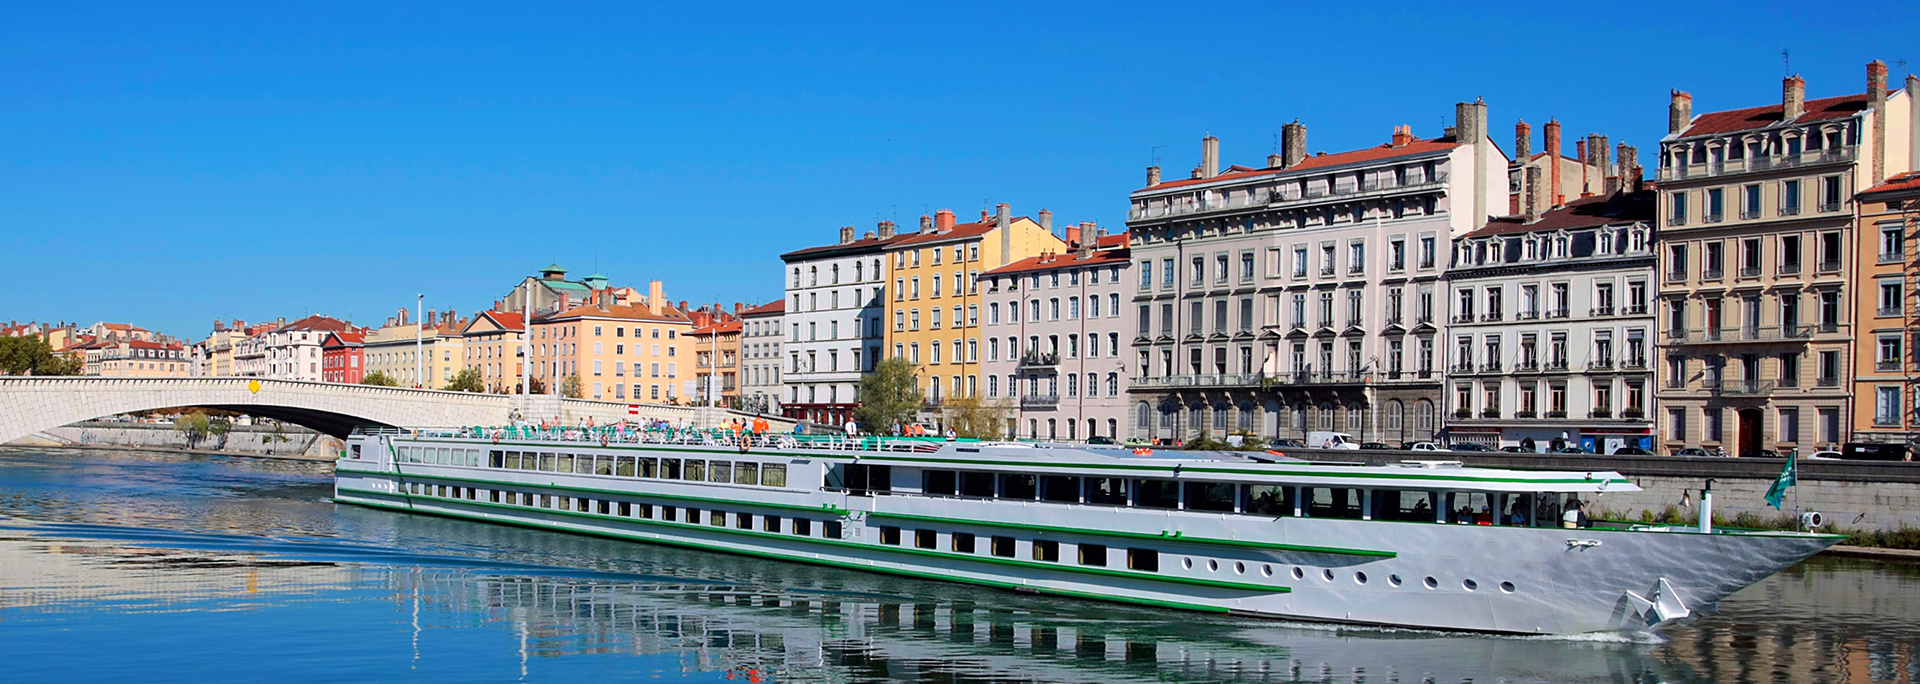 Agence immobilier lyon 5